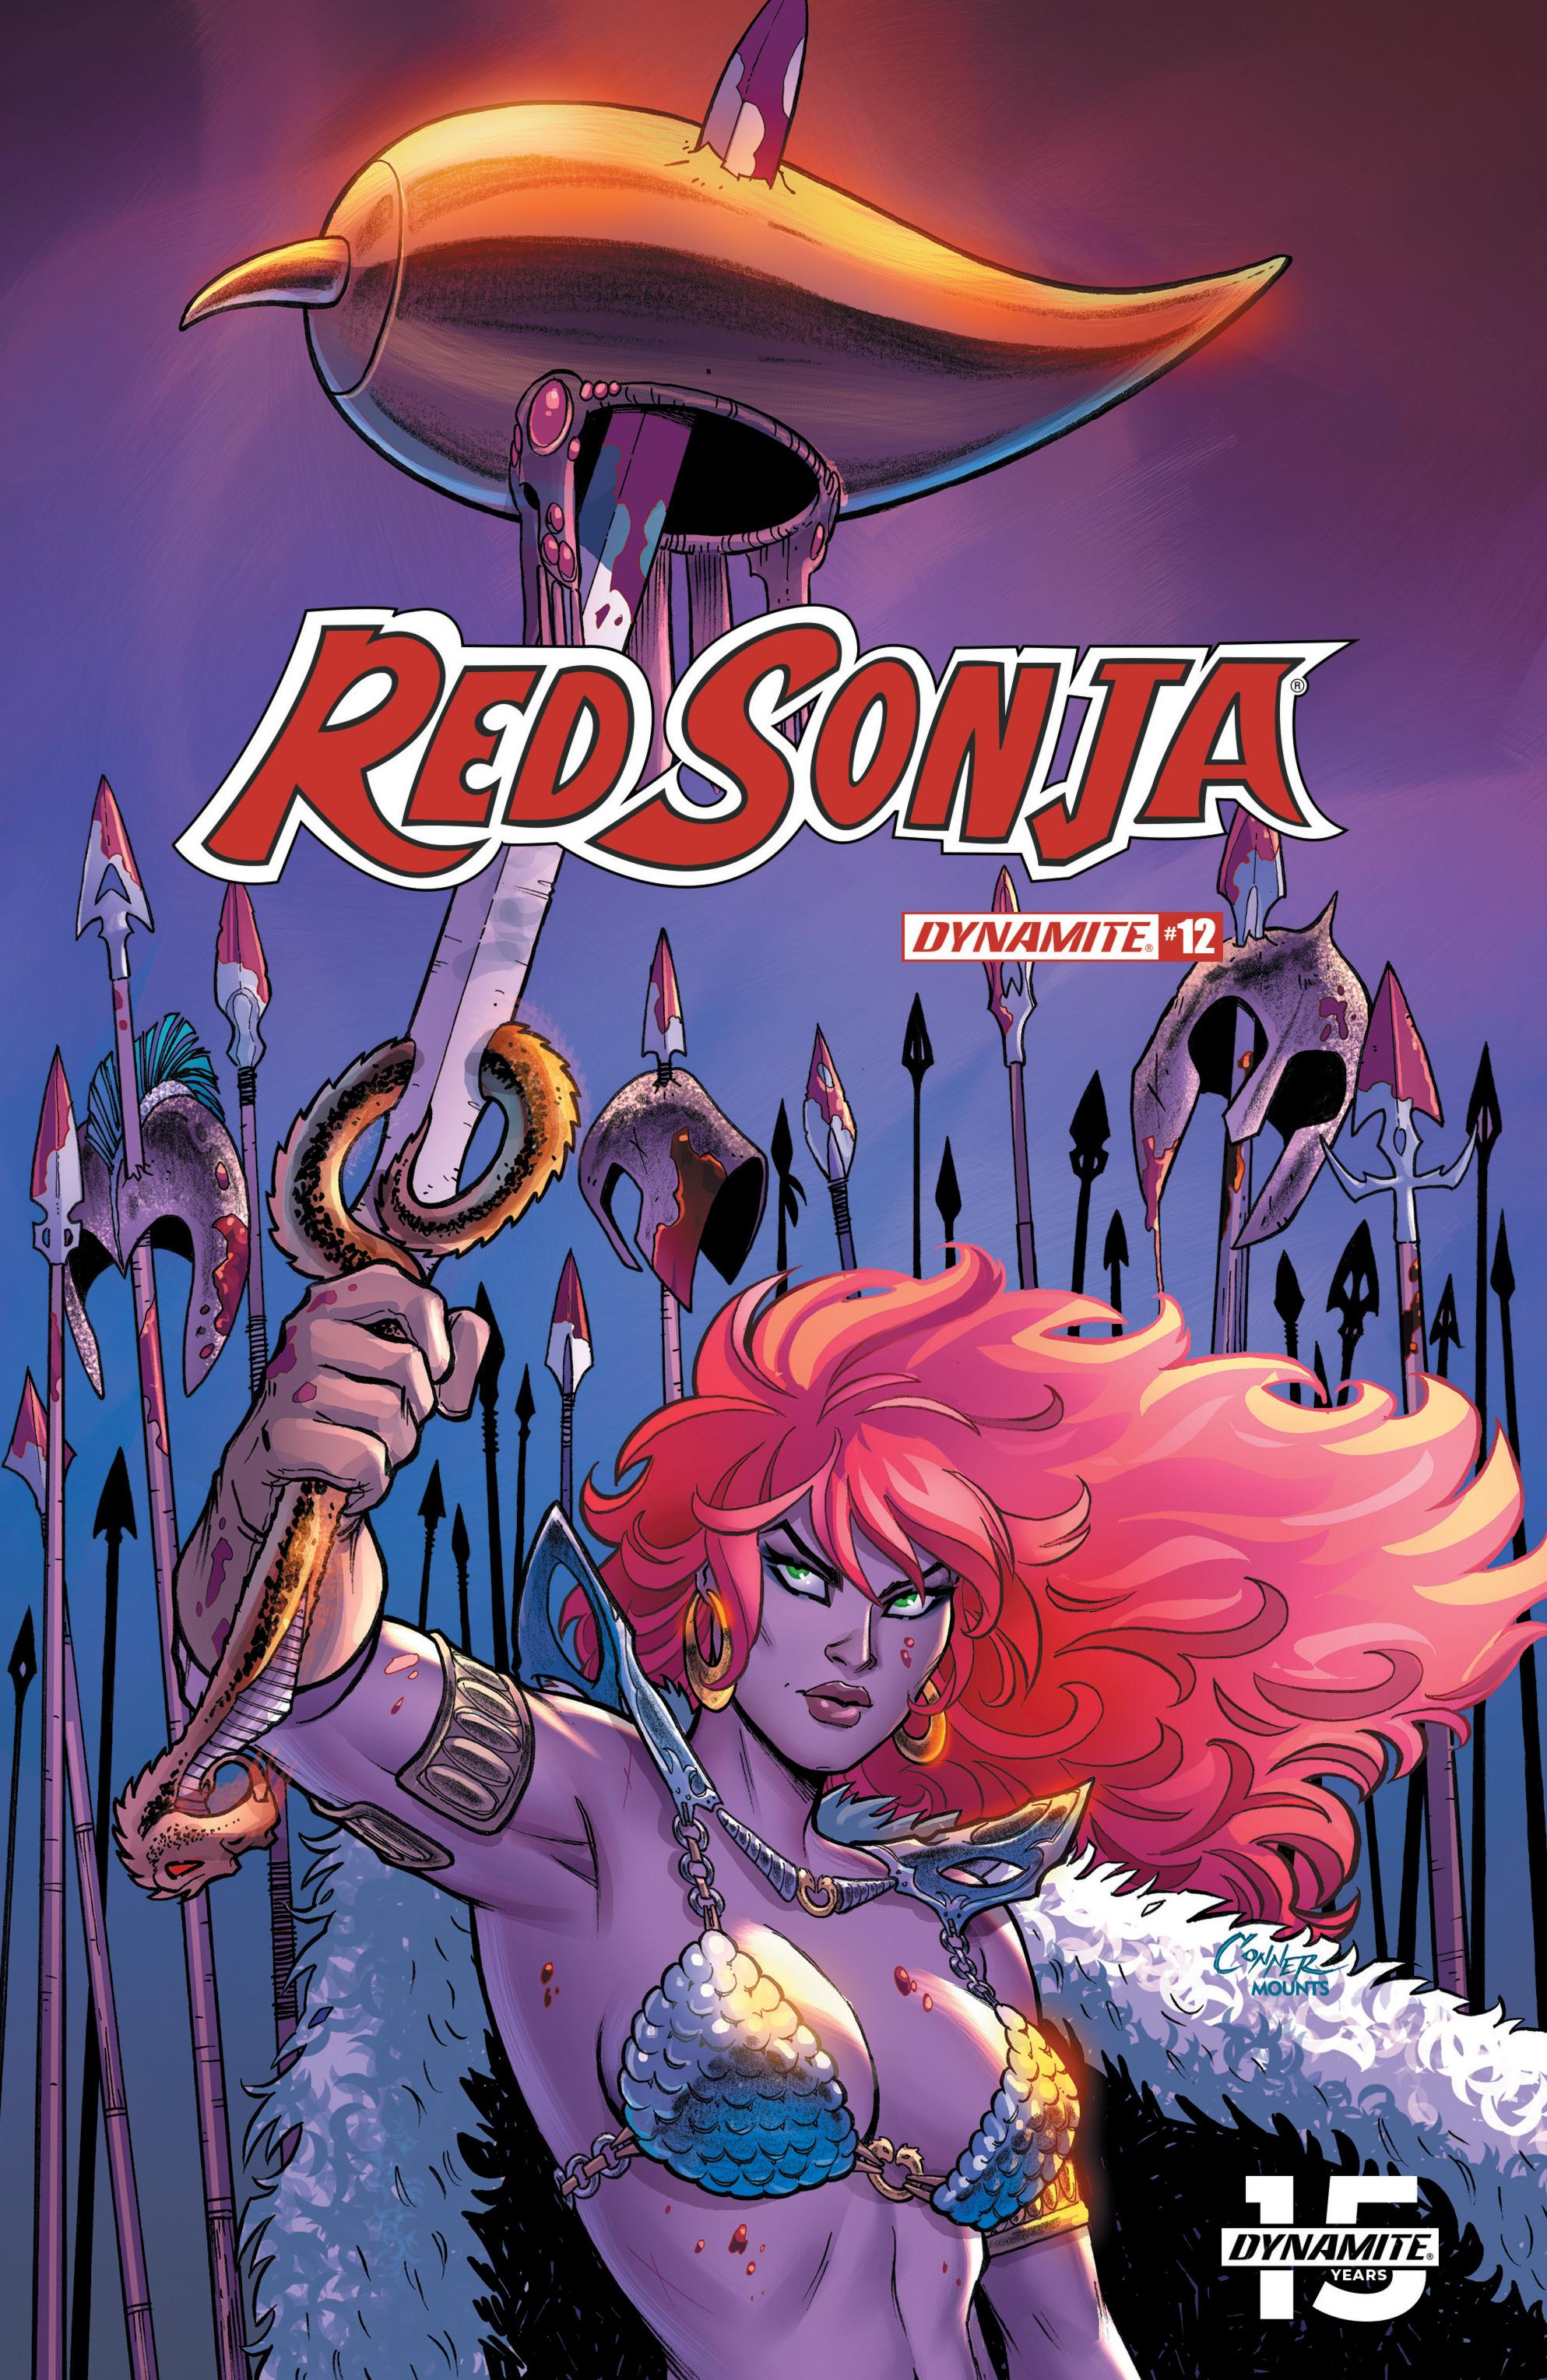 Red Sonja 012 2020 5 covers digital The Seeker